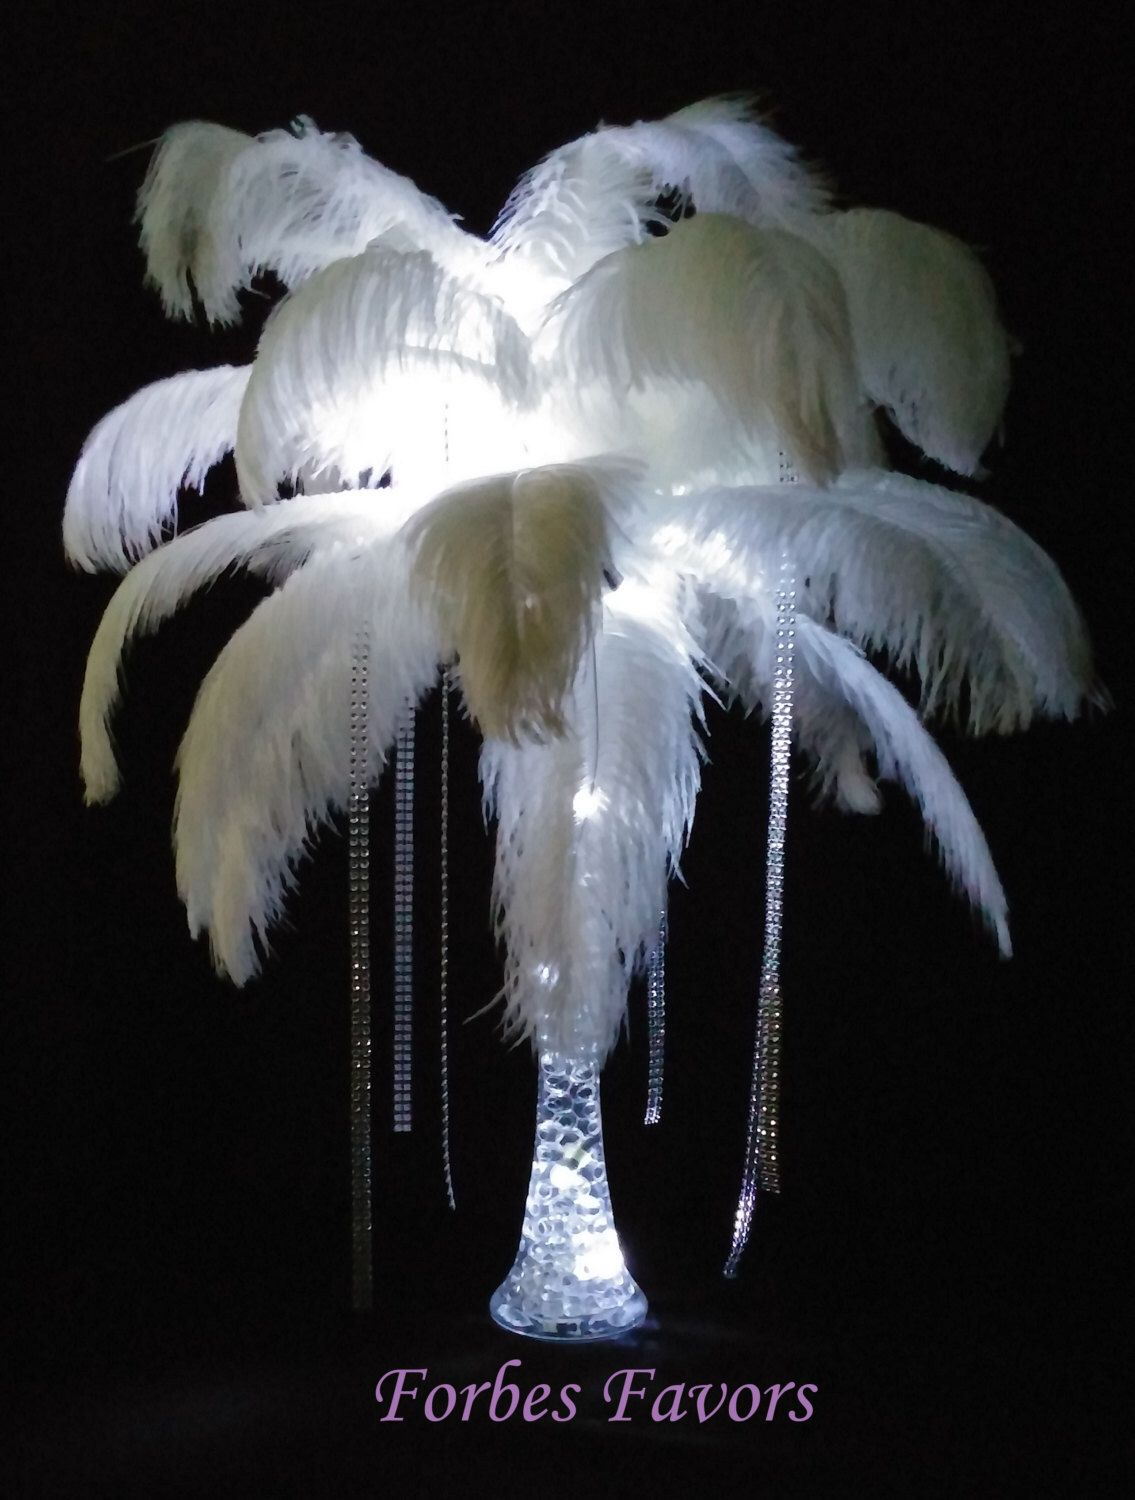 Rent ostrich feather centerpieces wedding amp party centerpiece rentals - Diy Mystique Ostrich Feather Centerpiece Weddings Special Events With Or Without Stand